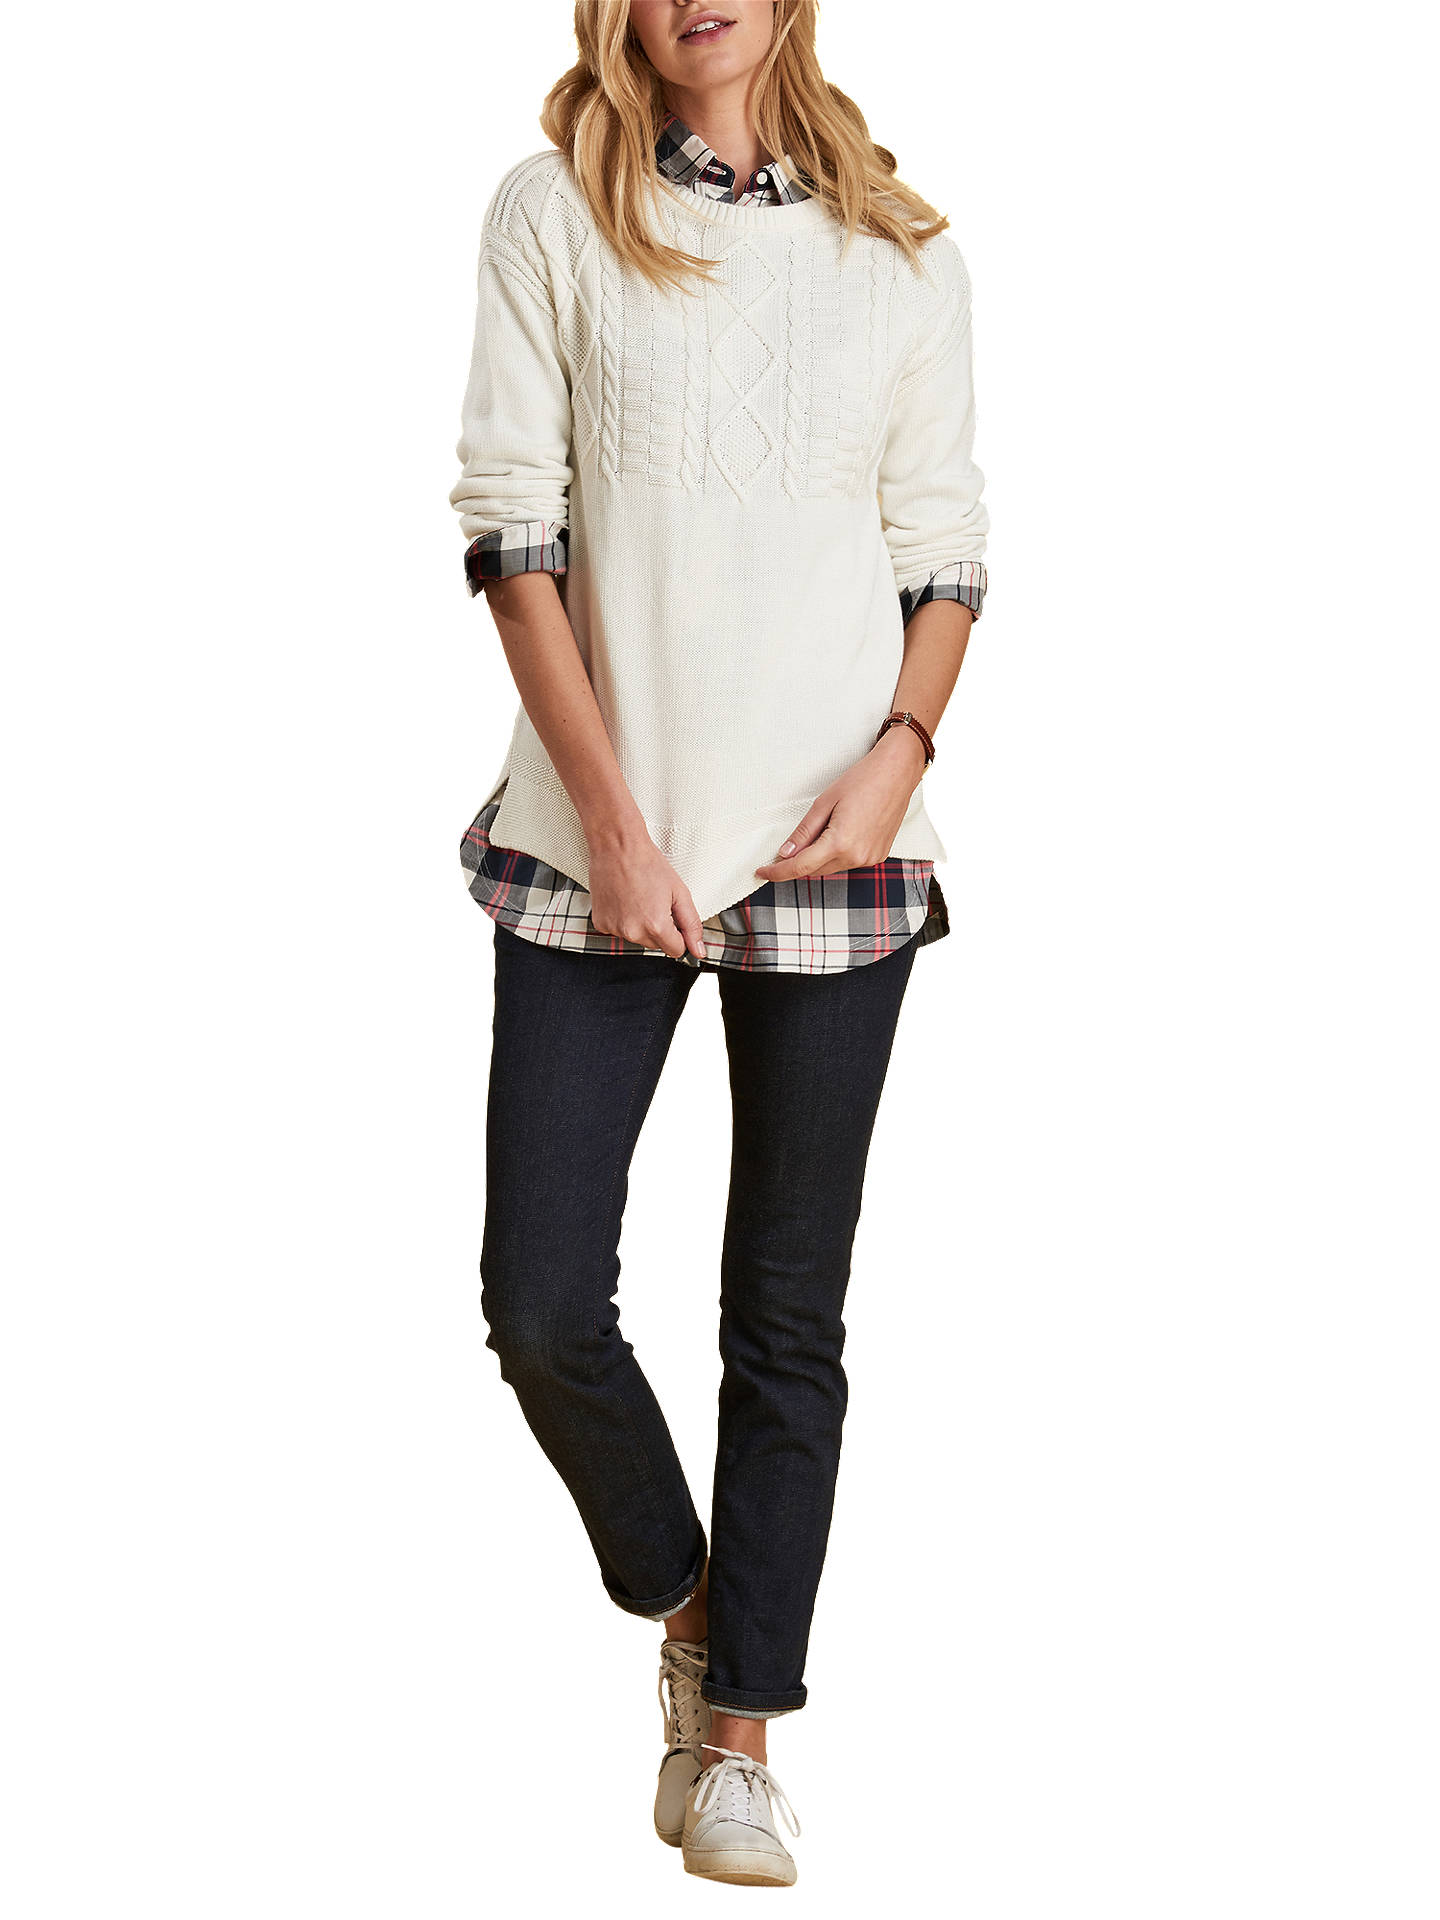 BuyBarbour Sandbank Tunic Shirt, Navy/White, 8 Online at johnlewis.com